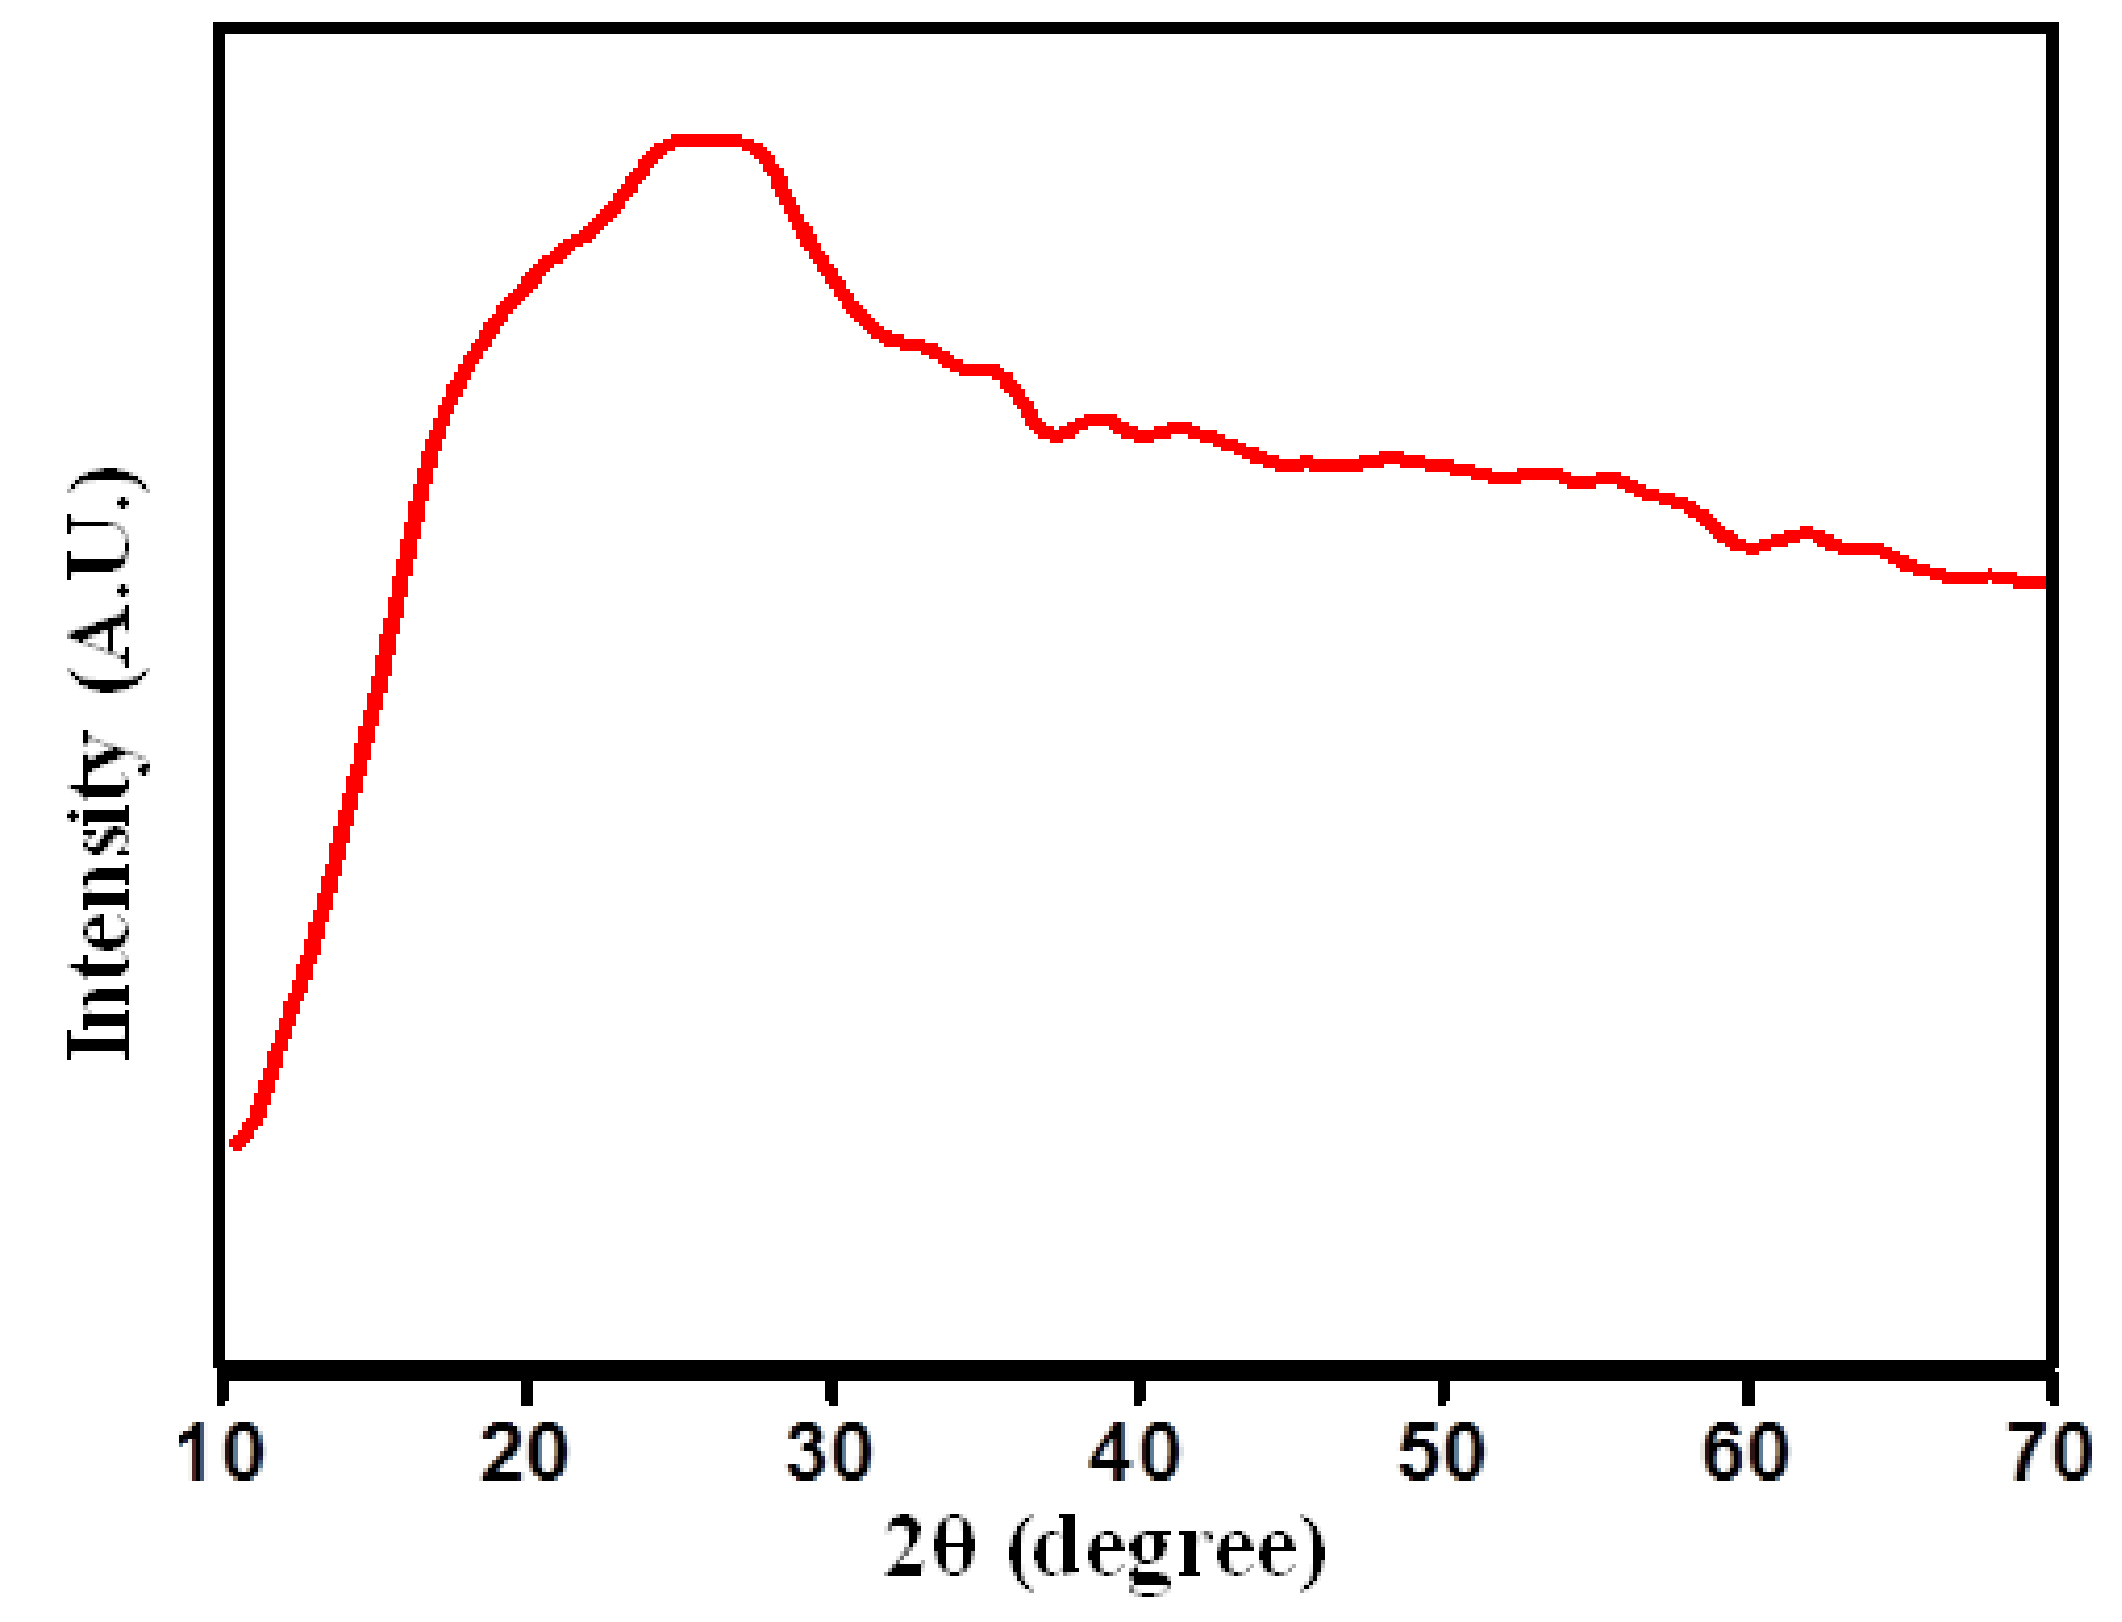 Figure 1. X-ray diffraction profile of PIn sample with stoichiometric ratio of indole and FeCl3 as (40:60) Wt. %.